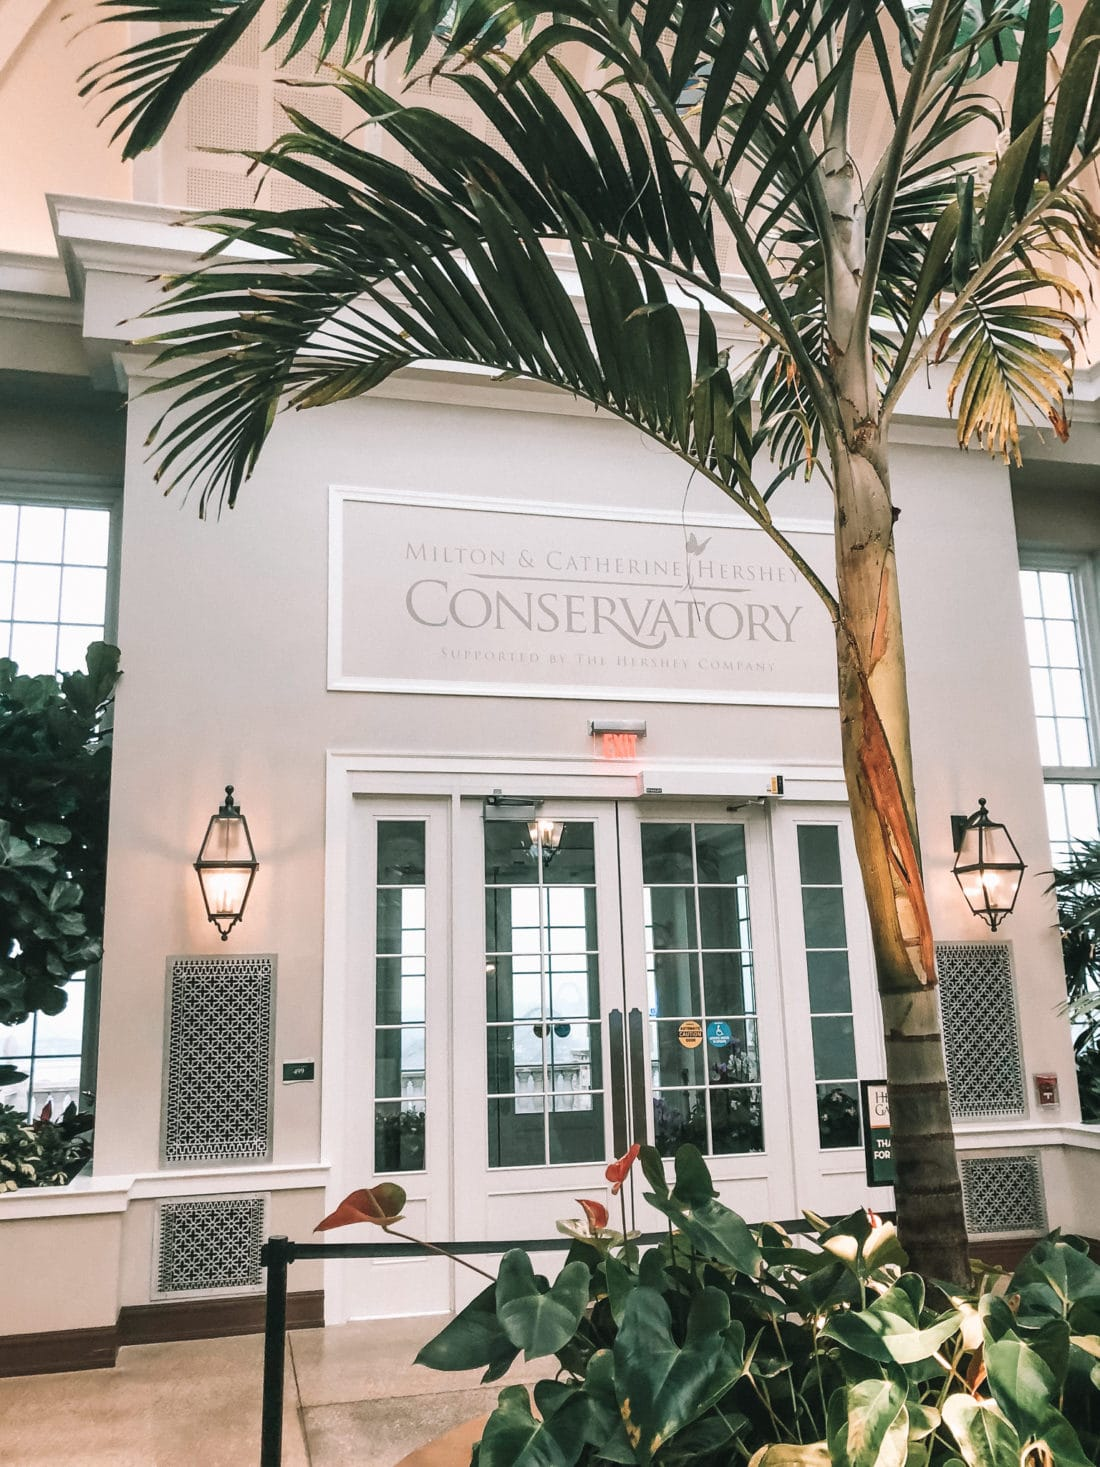 The Hershey Conservatory Entrance. Visit the Hershey Gardens to see real life butterflies! Play with butterflies and take amazing photos.